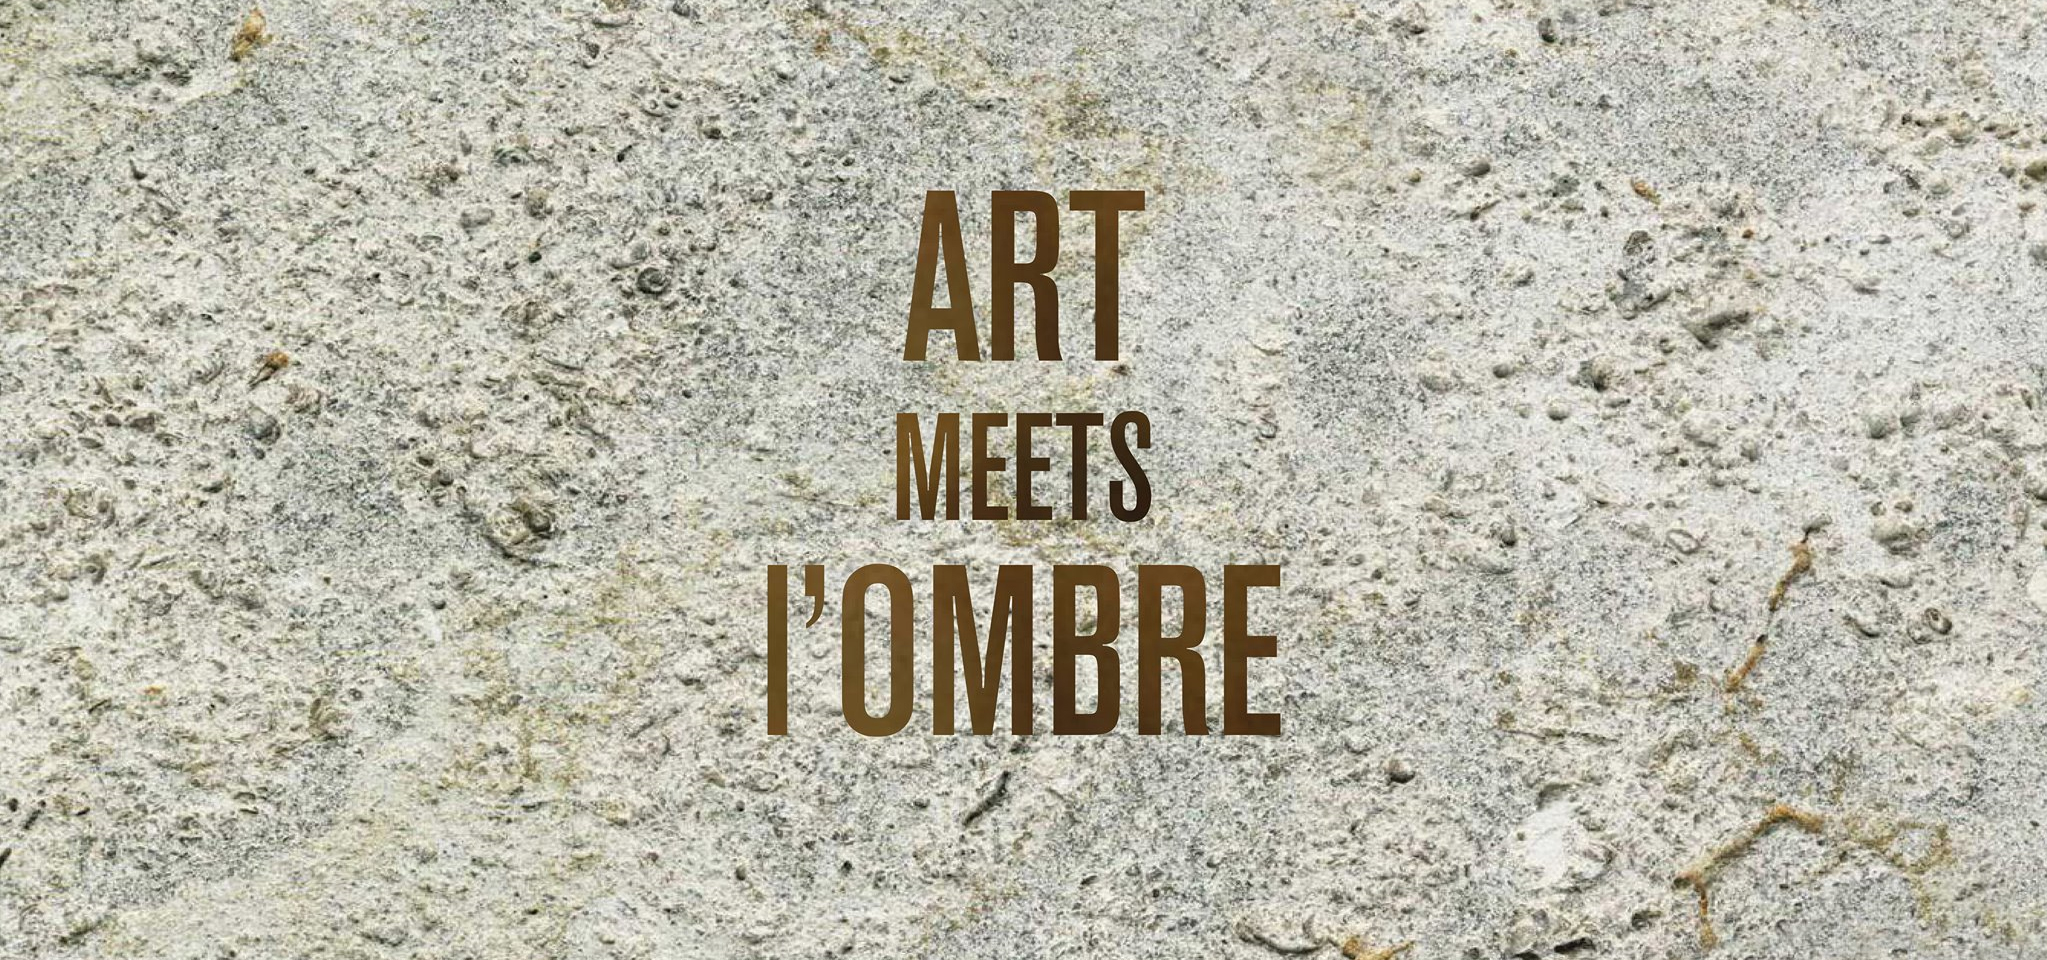 Art meets l'ombre